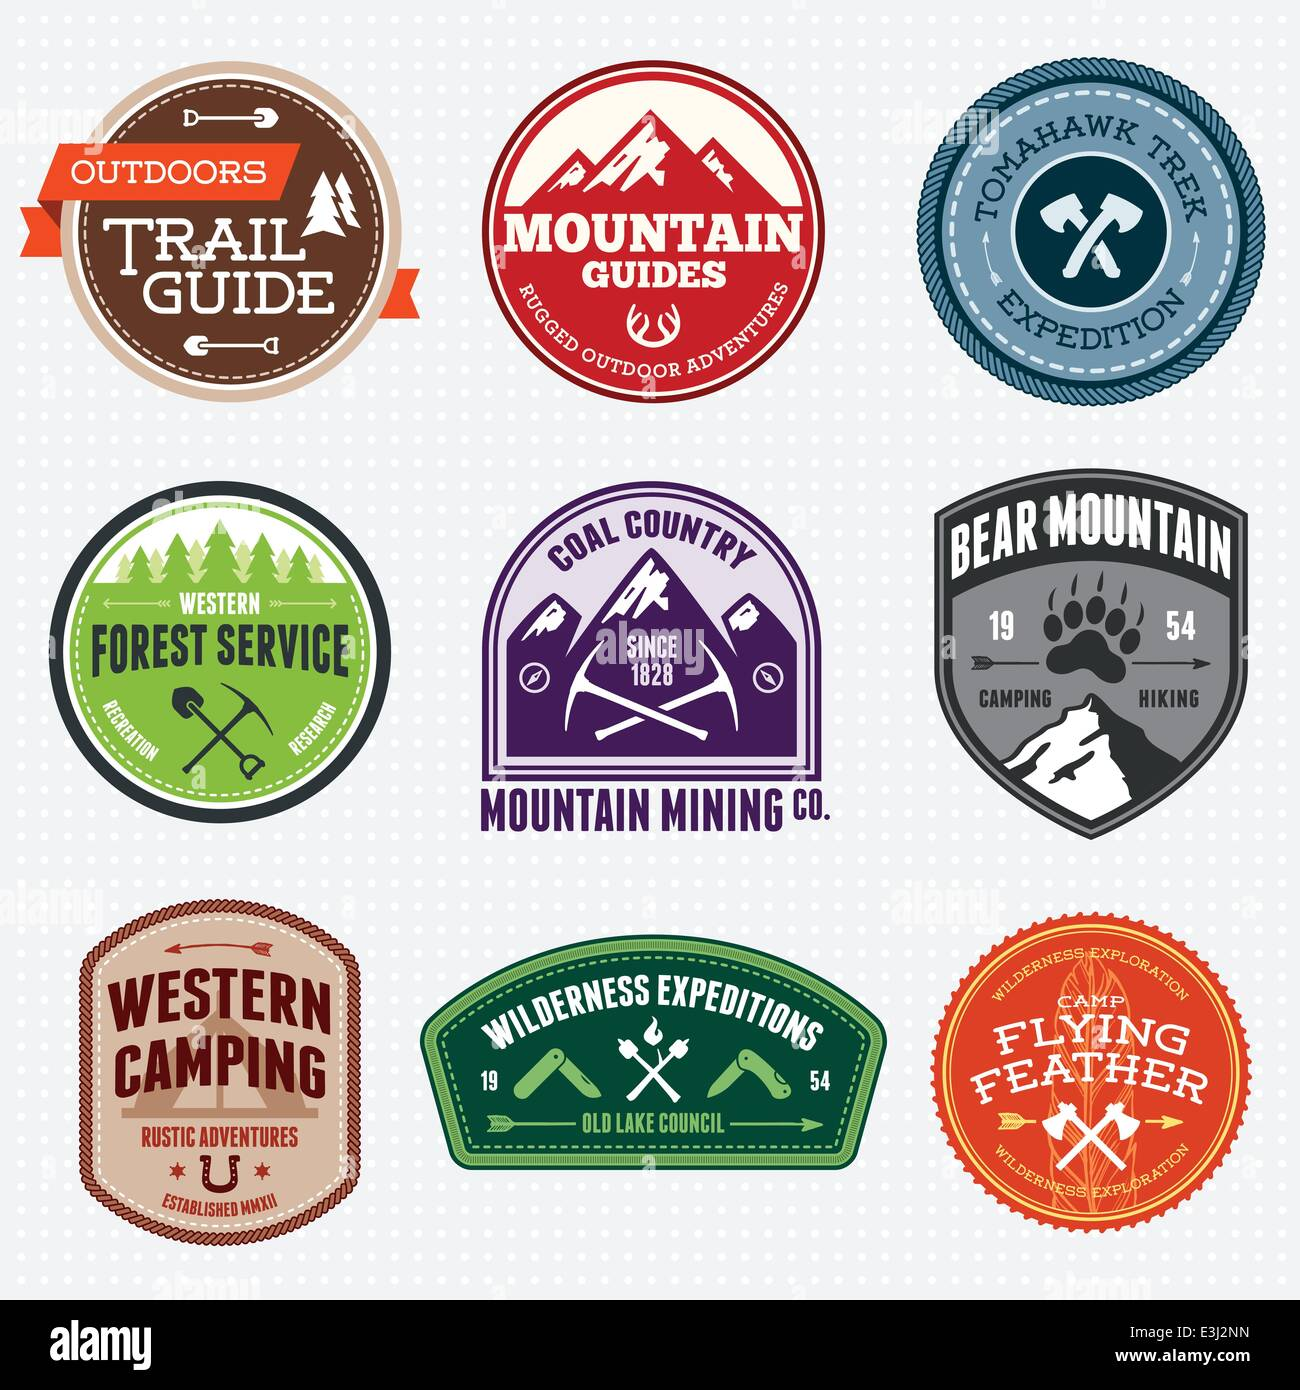 Set of outdoor adventure and expedition badges - Stock Image